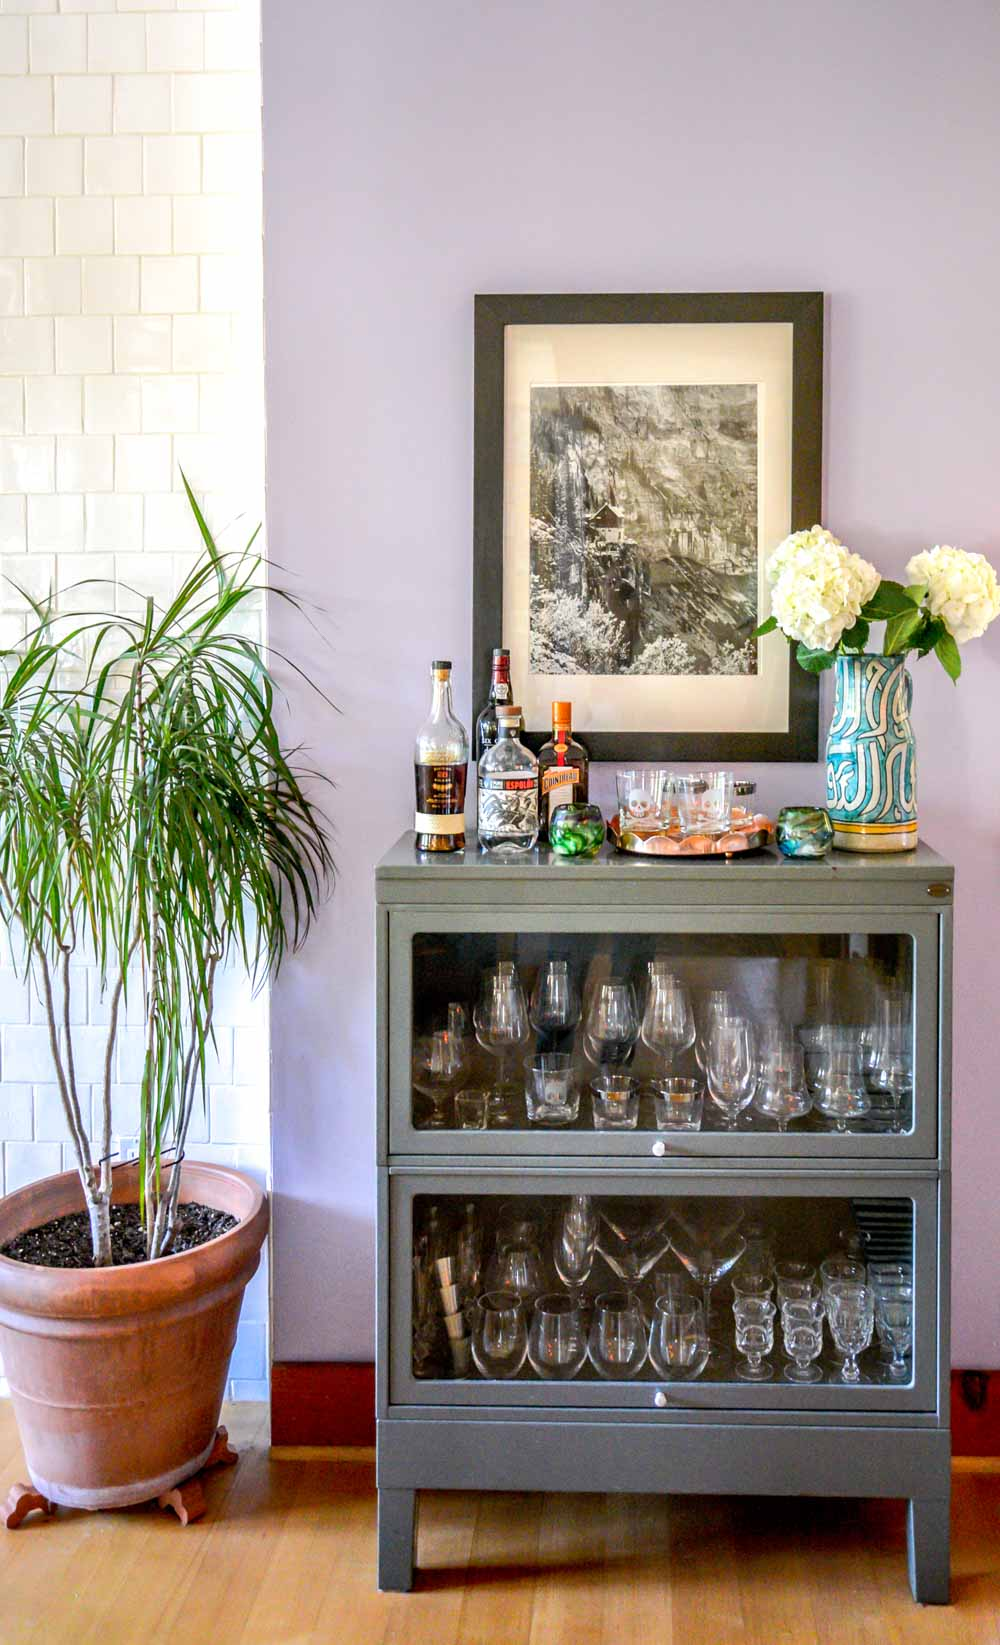 An Artist's Haven Built By Hand in Alexandria, VA | Design*Sponge